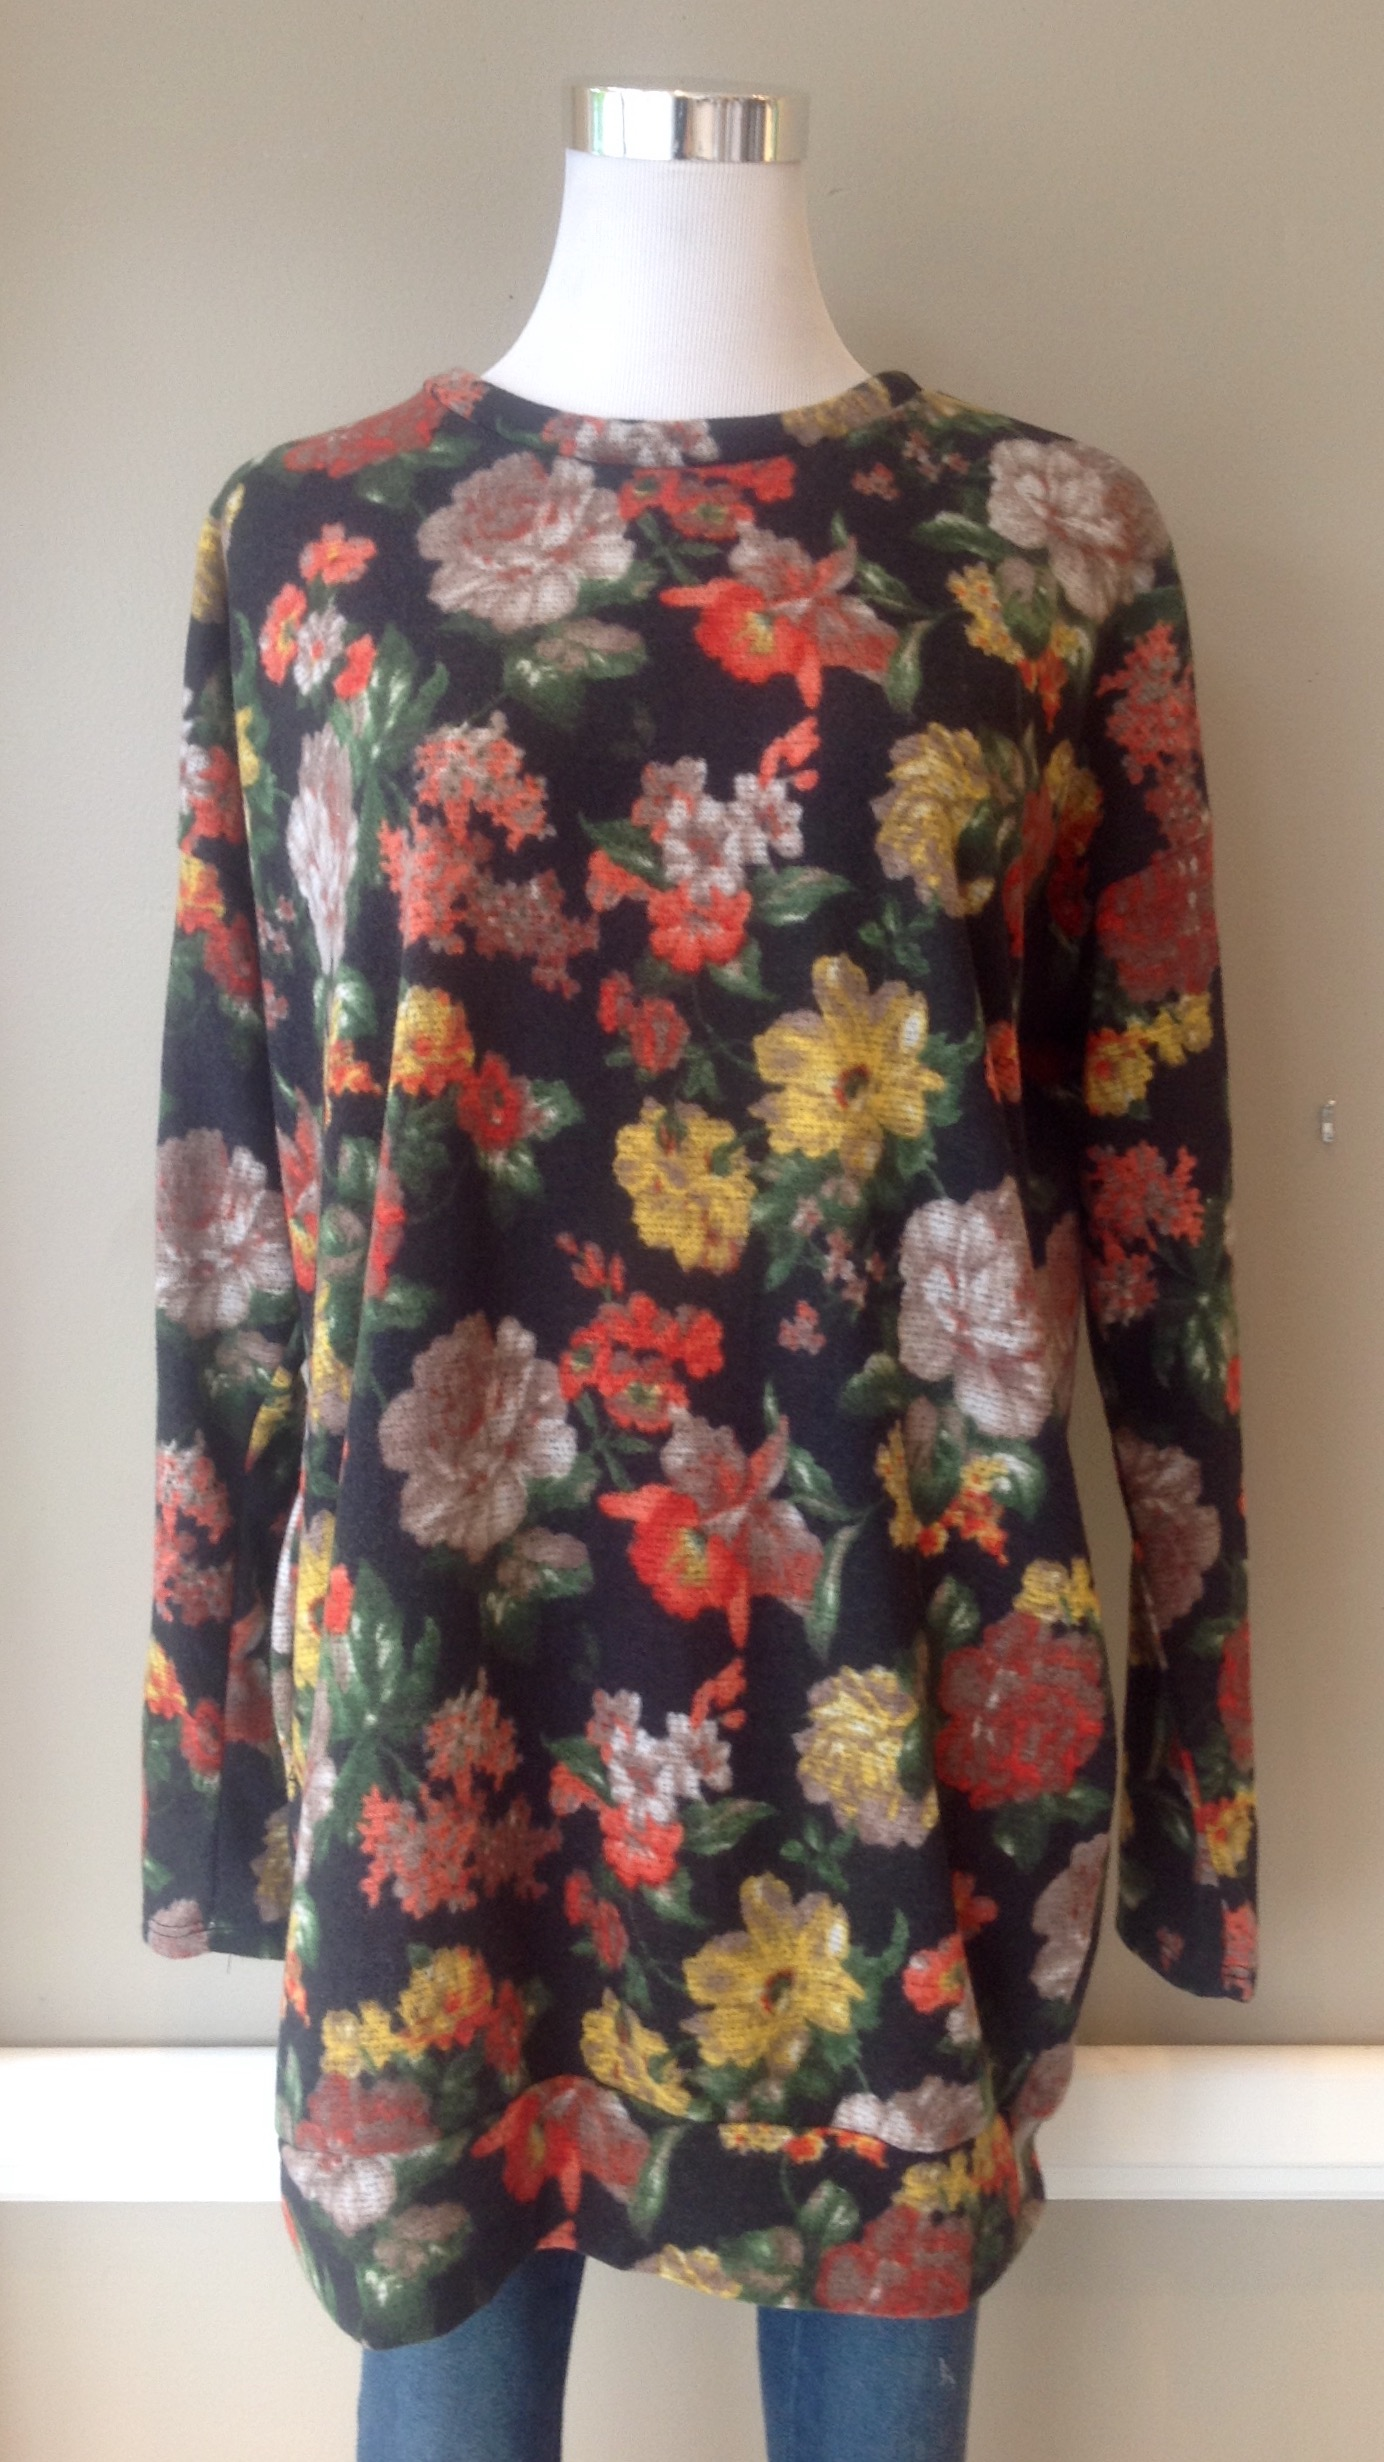 Fleecy tunic sweater with side pockets in multicolored floral, $35